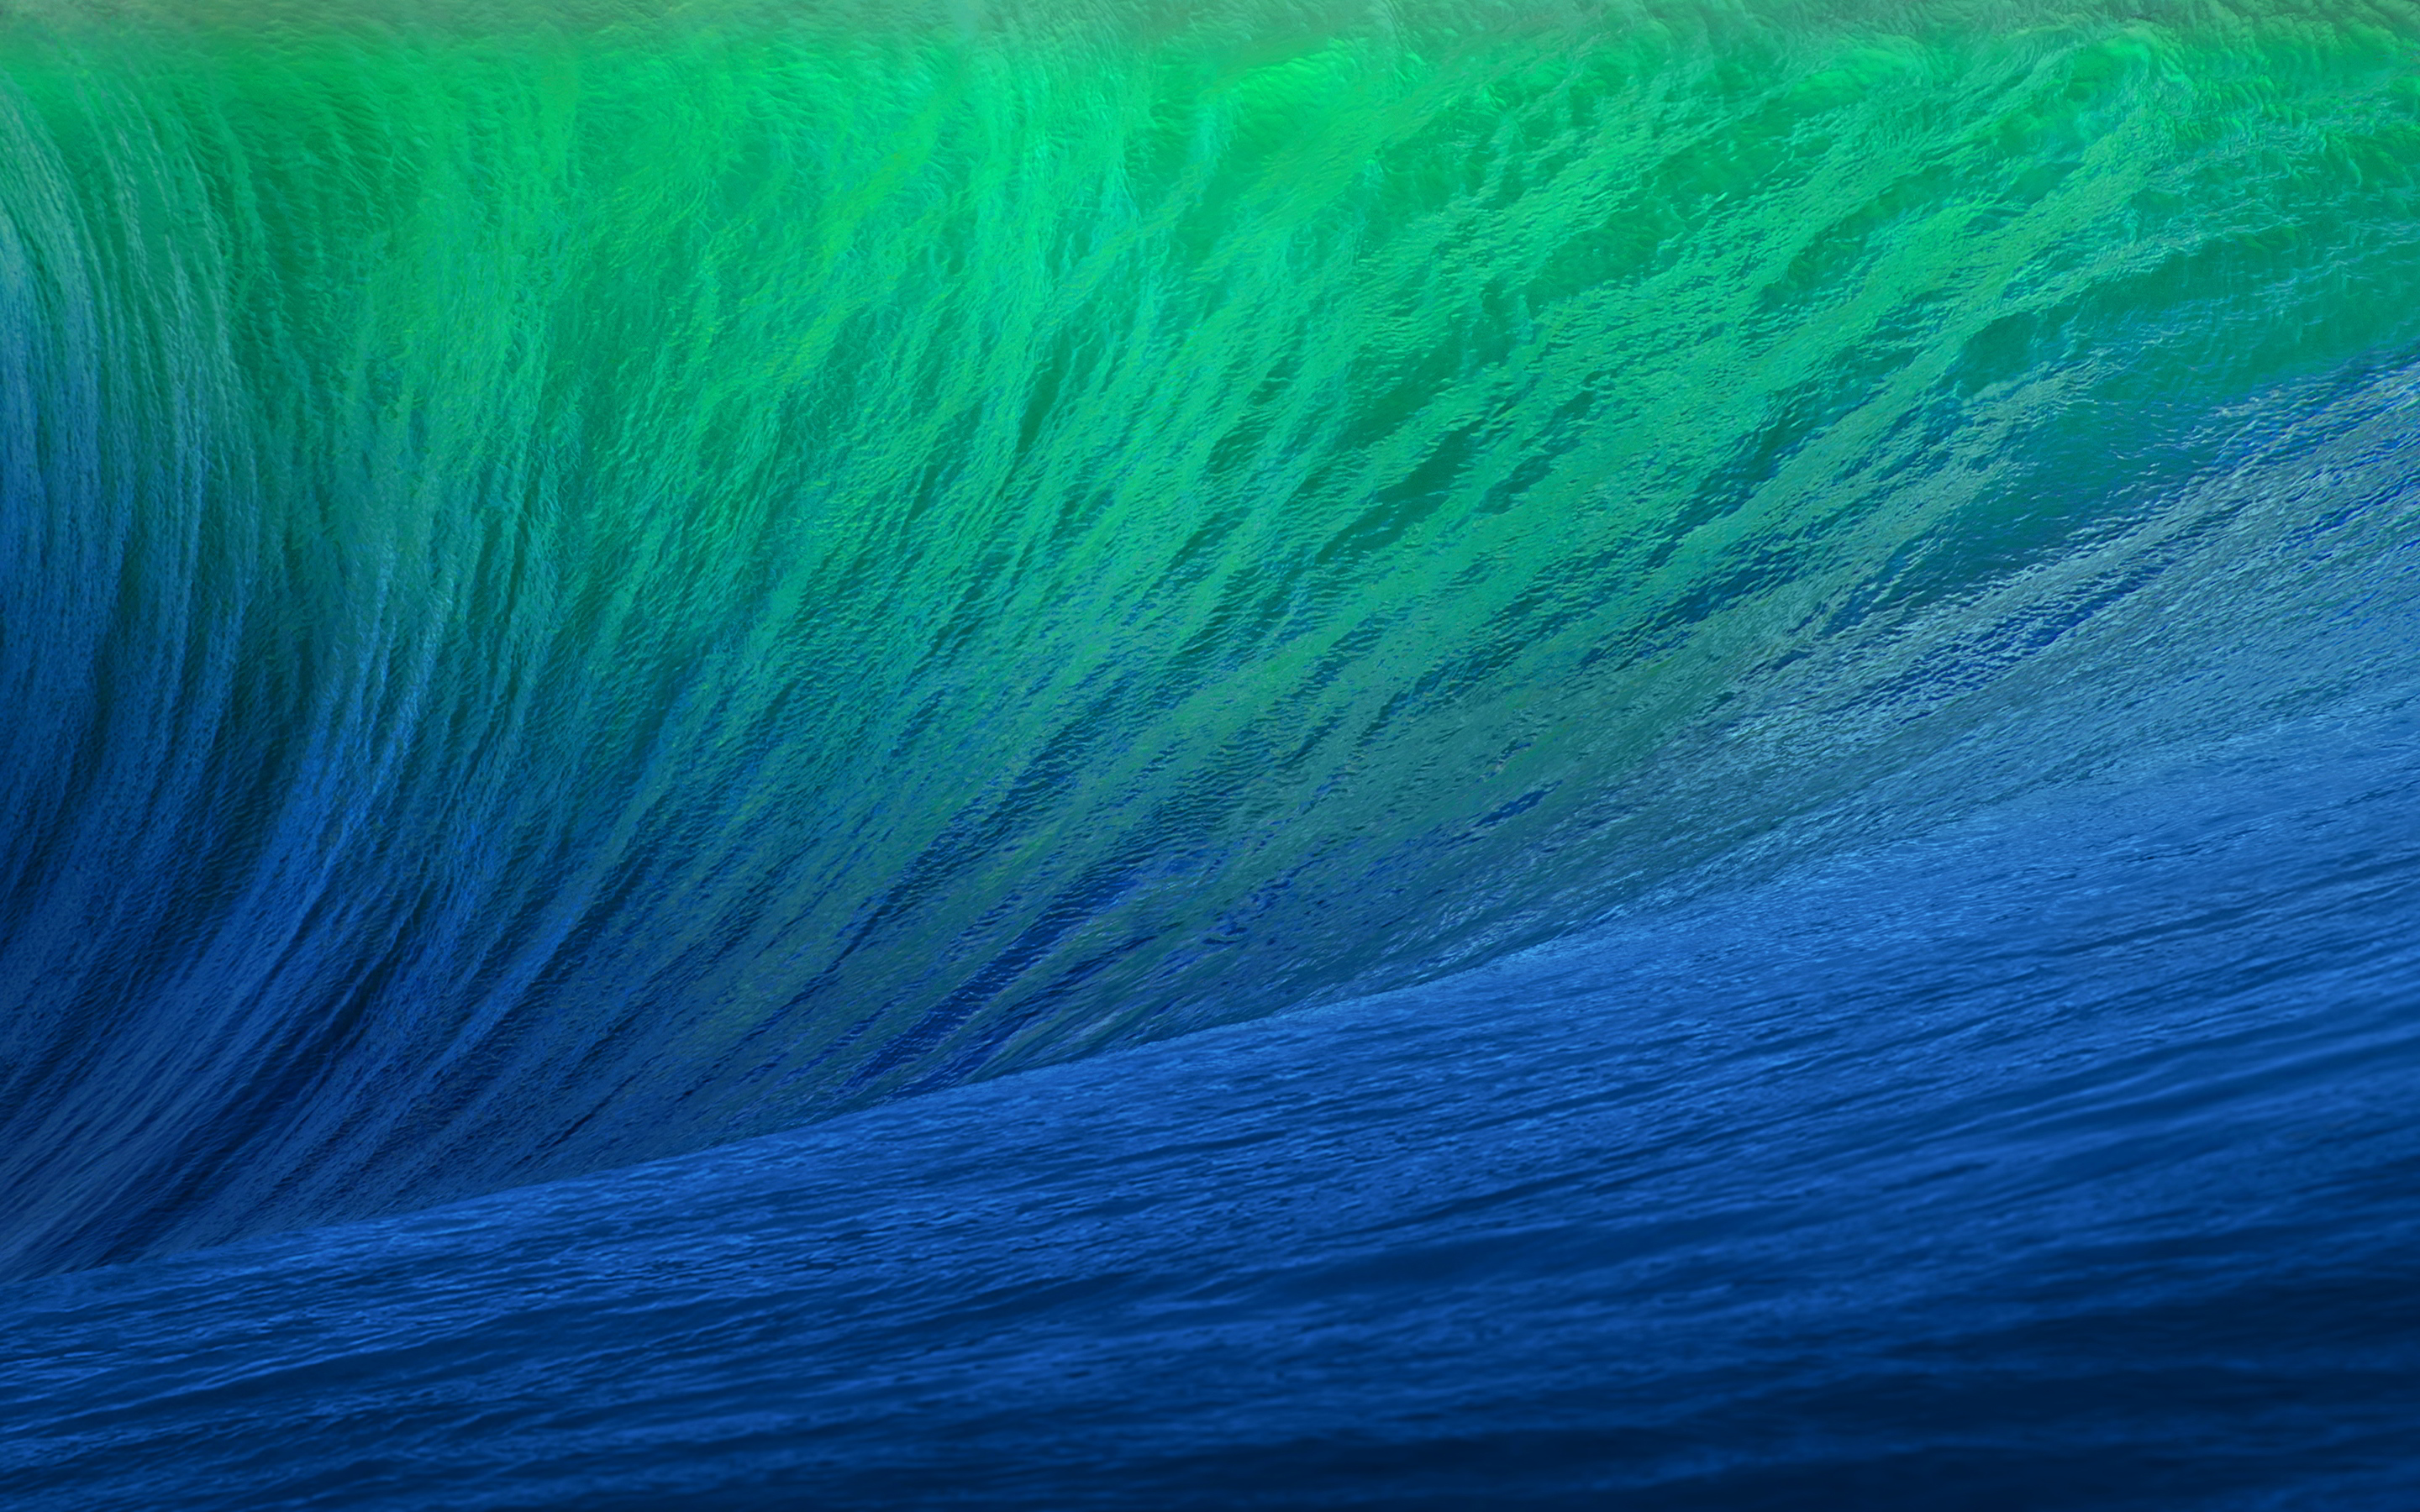 ... green-blue-ocean-wave